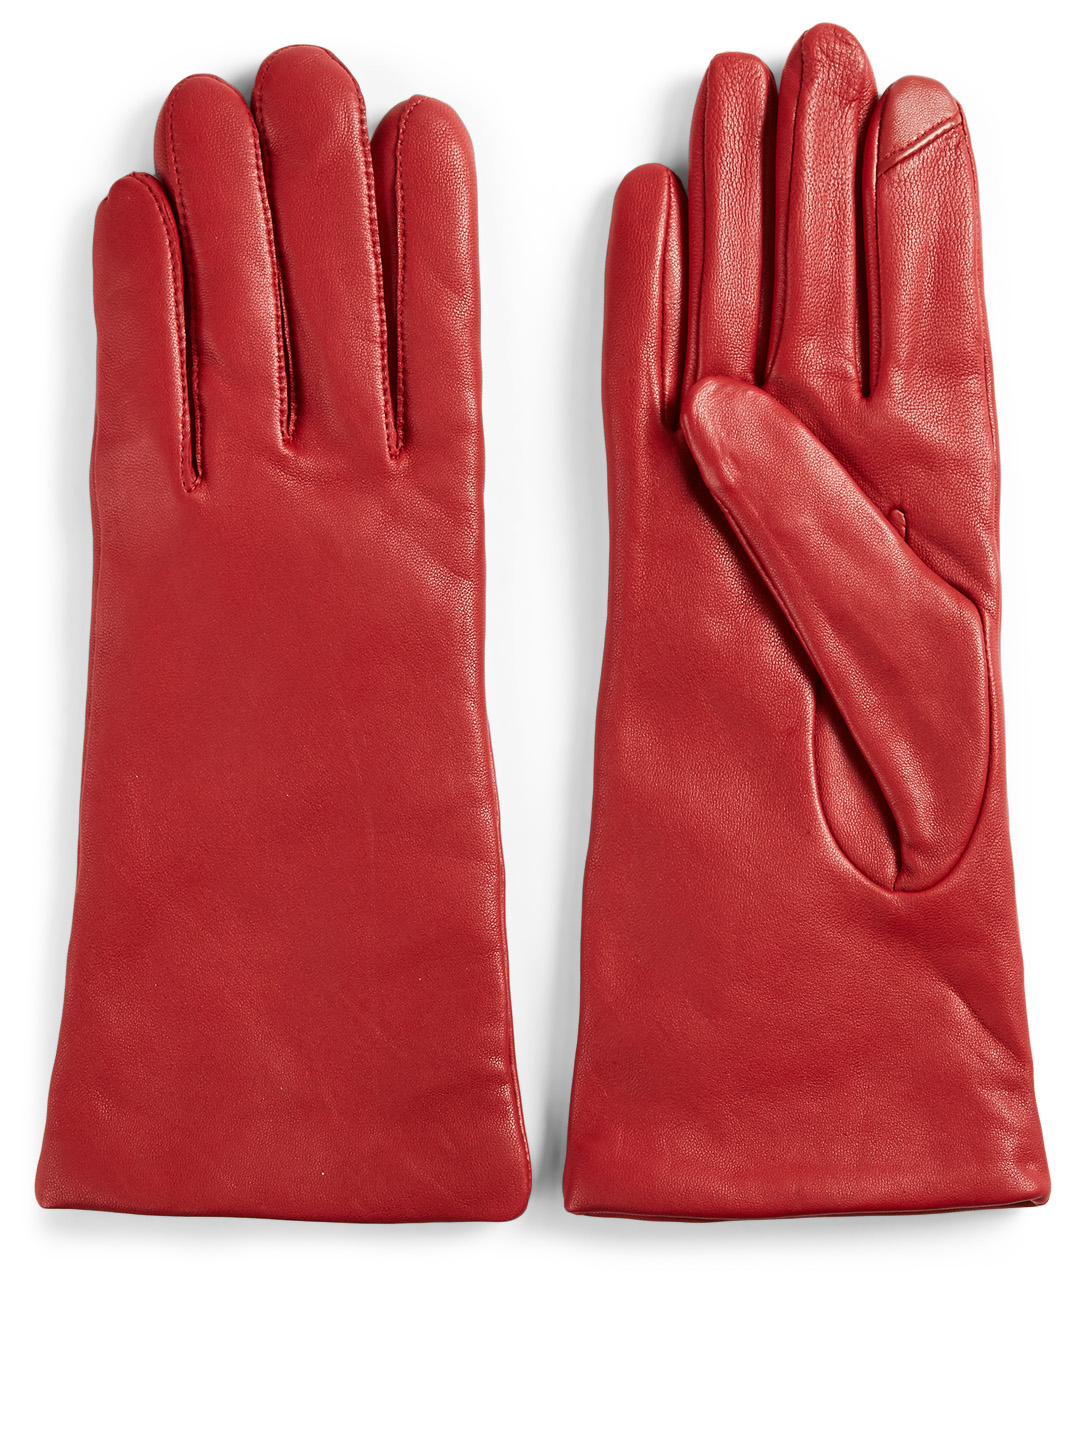 FOWNES BROTHERS & CO. Leather Tech Gloves Collections Red